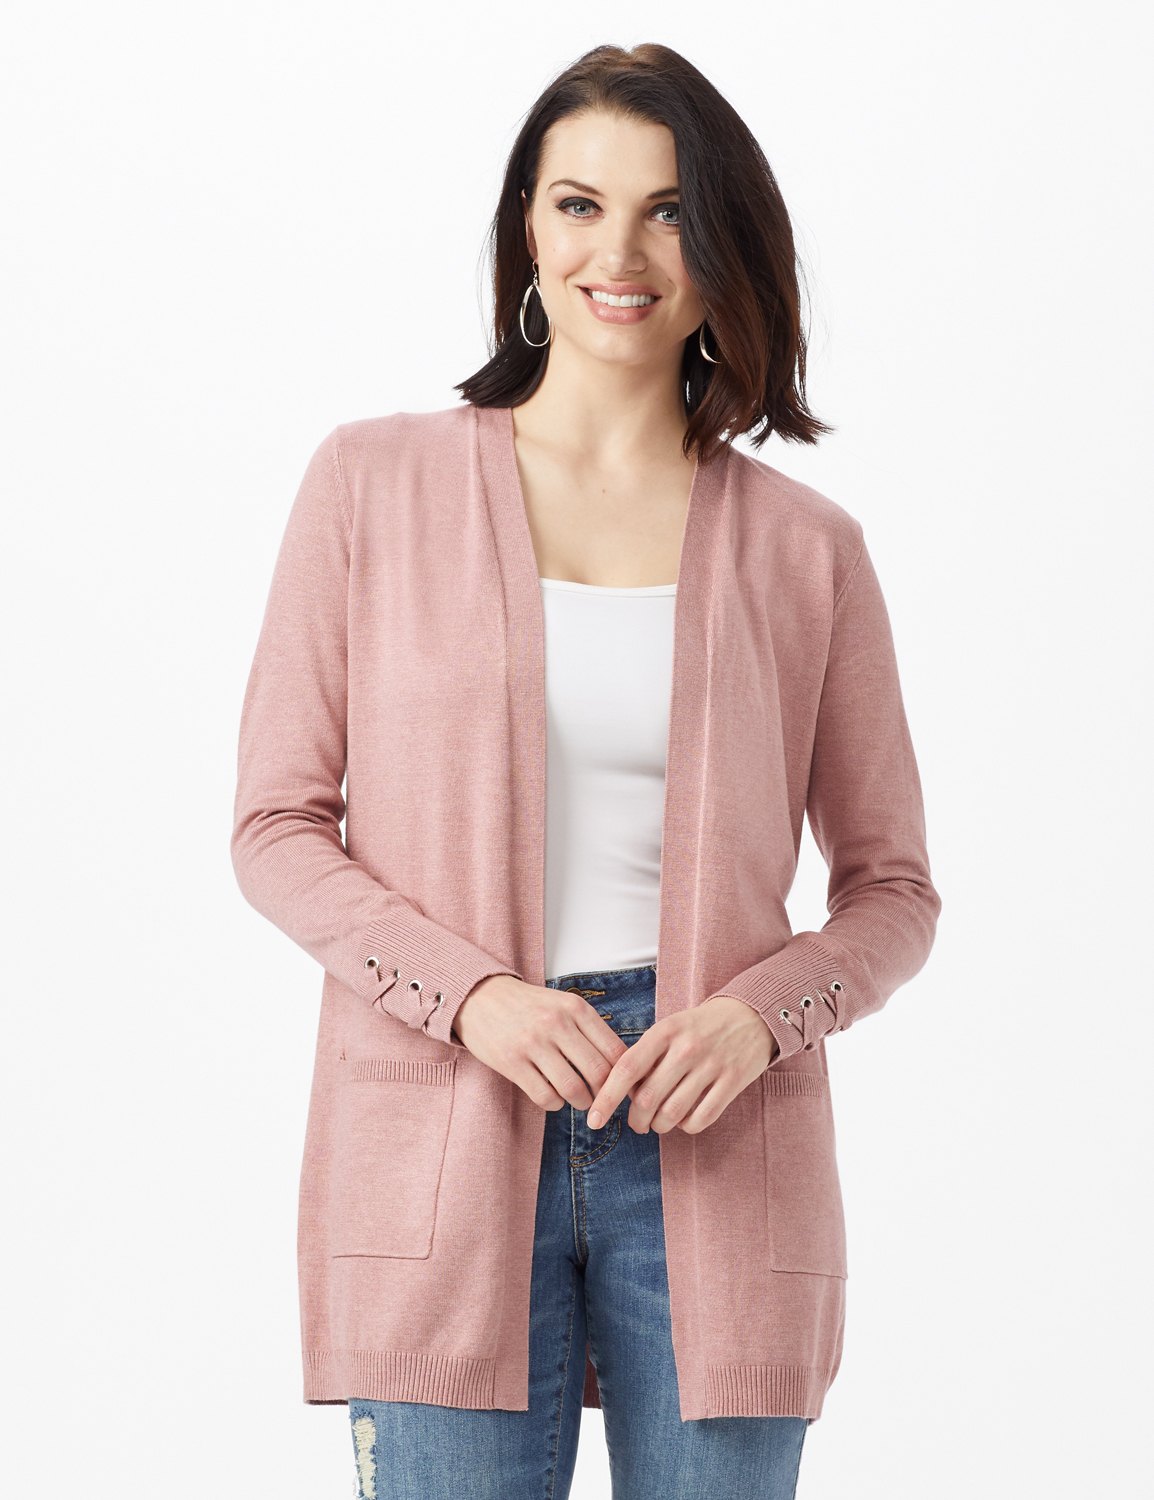 Grommet Lace-Up Trim Open Cardigan -Rose Heather - Front